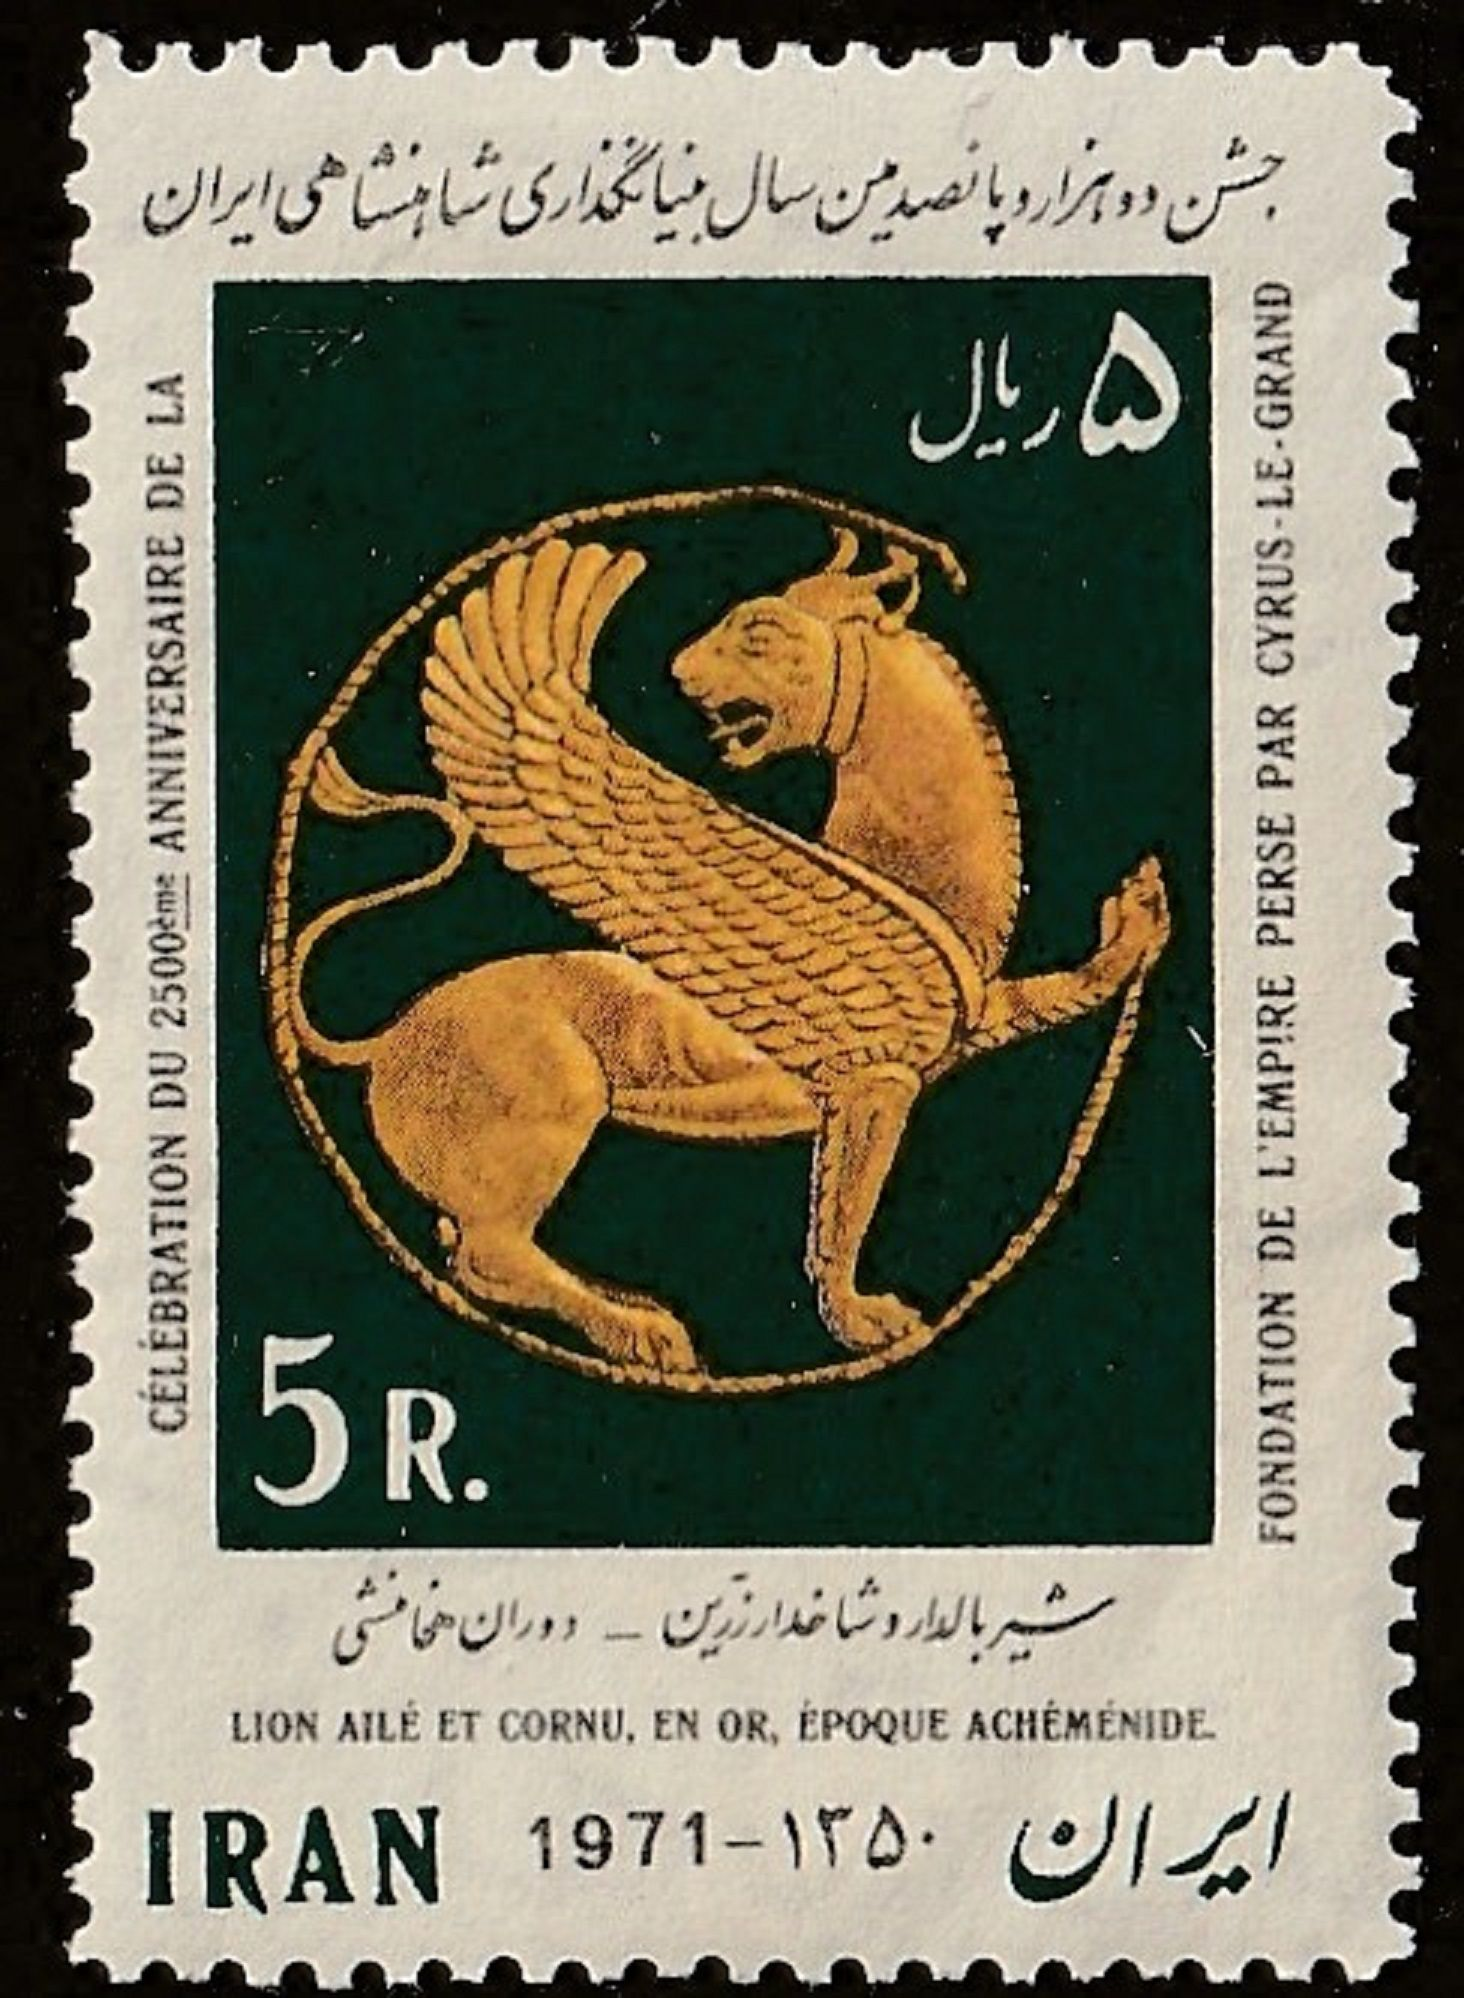 Iran stamp scott 1593 mnh just this image alone is awesome mnh just this image alone is awesome more of a late model winged lion on all early iran stamps there was a winged lion holding a sword all symbols of buycottarizona Choice Image